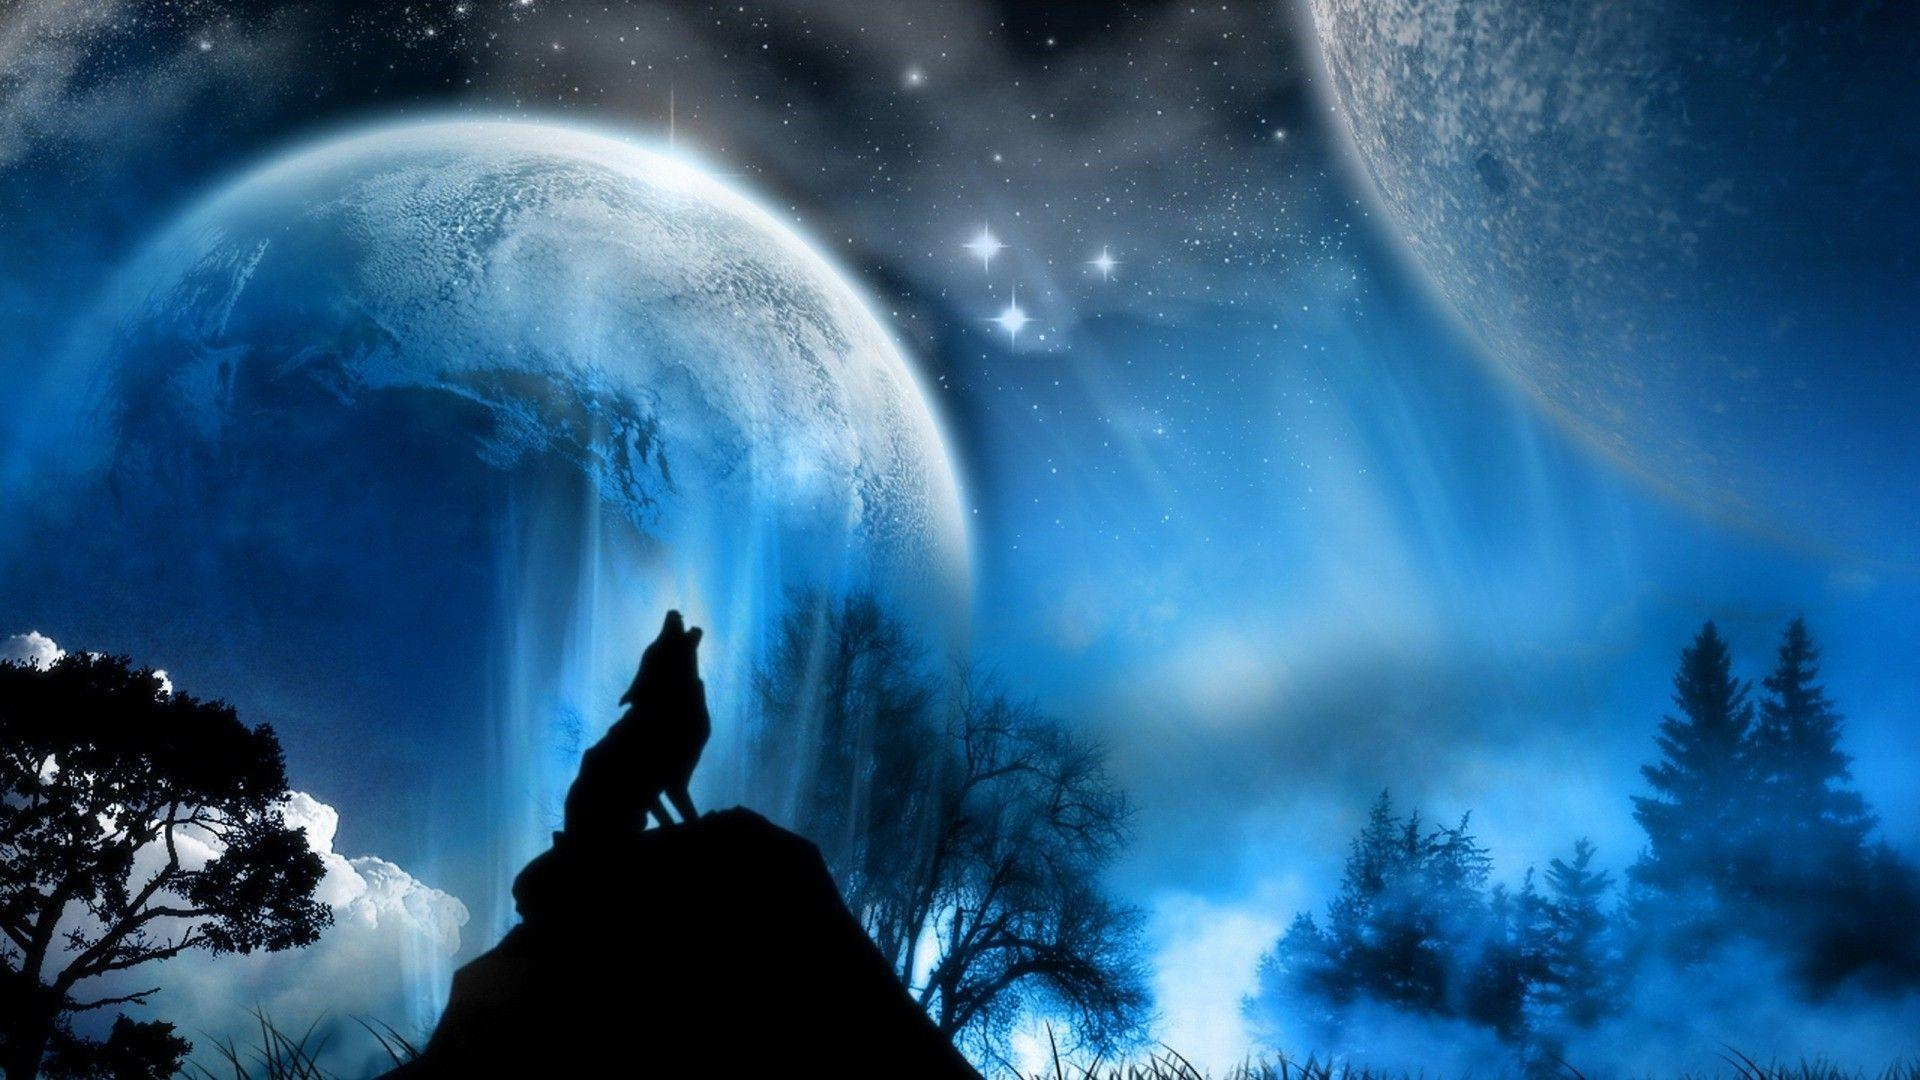 Free Download Wolf Howling Full Moon Hd Wallpapers Lowrider Car